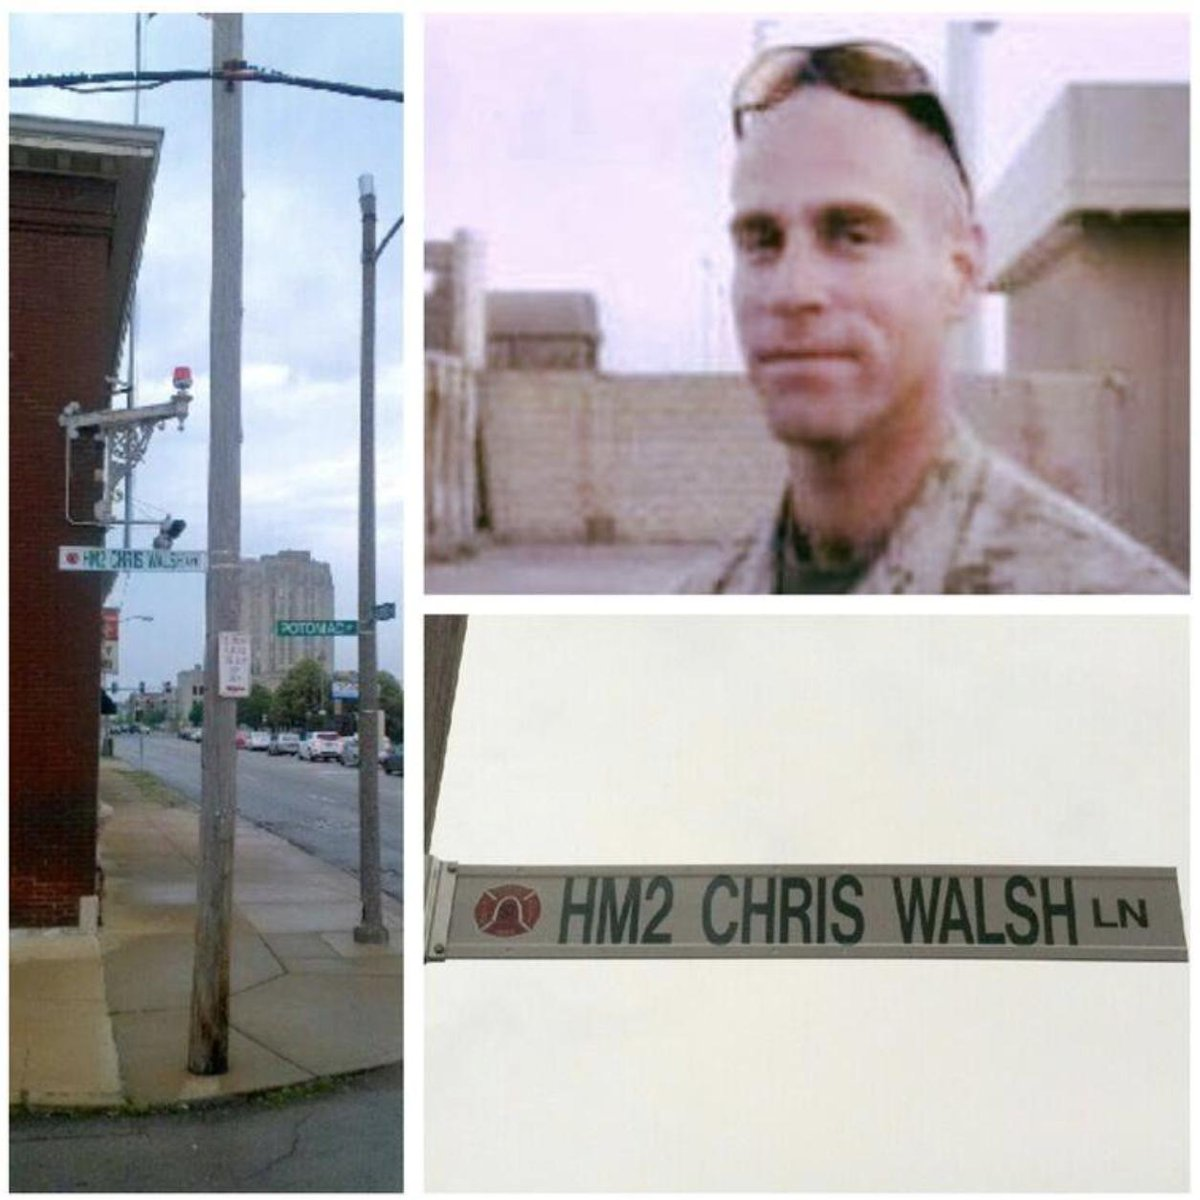 Chriss memory lives on. Most importantly, in the Marines he cared for & Iraqi lives he saved. The street beside his firehouse & a Fire Department lifesaving award both bear his name. Chris led a worthy, service filled life - one worth remembering this #MemorialDay.